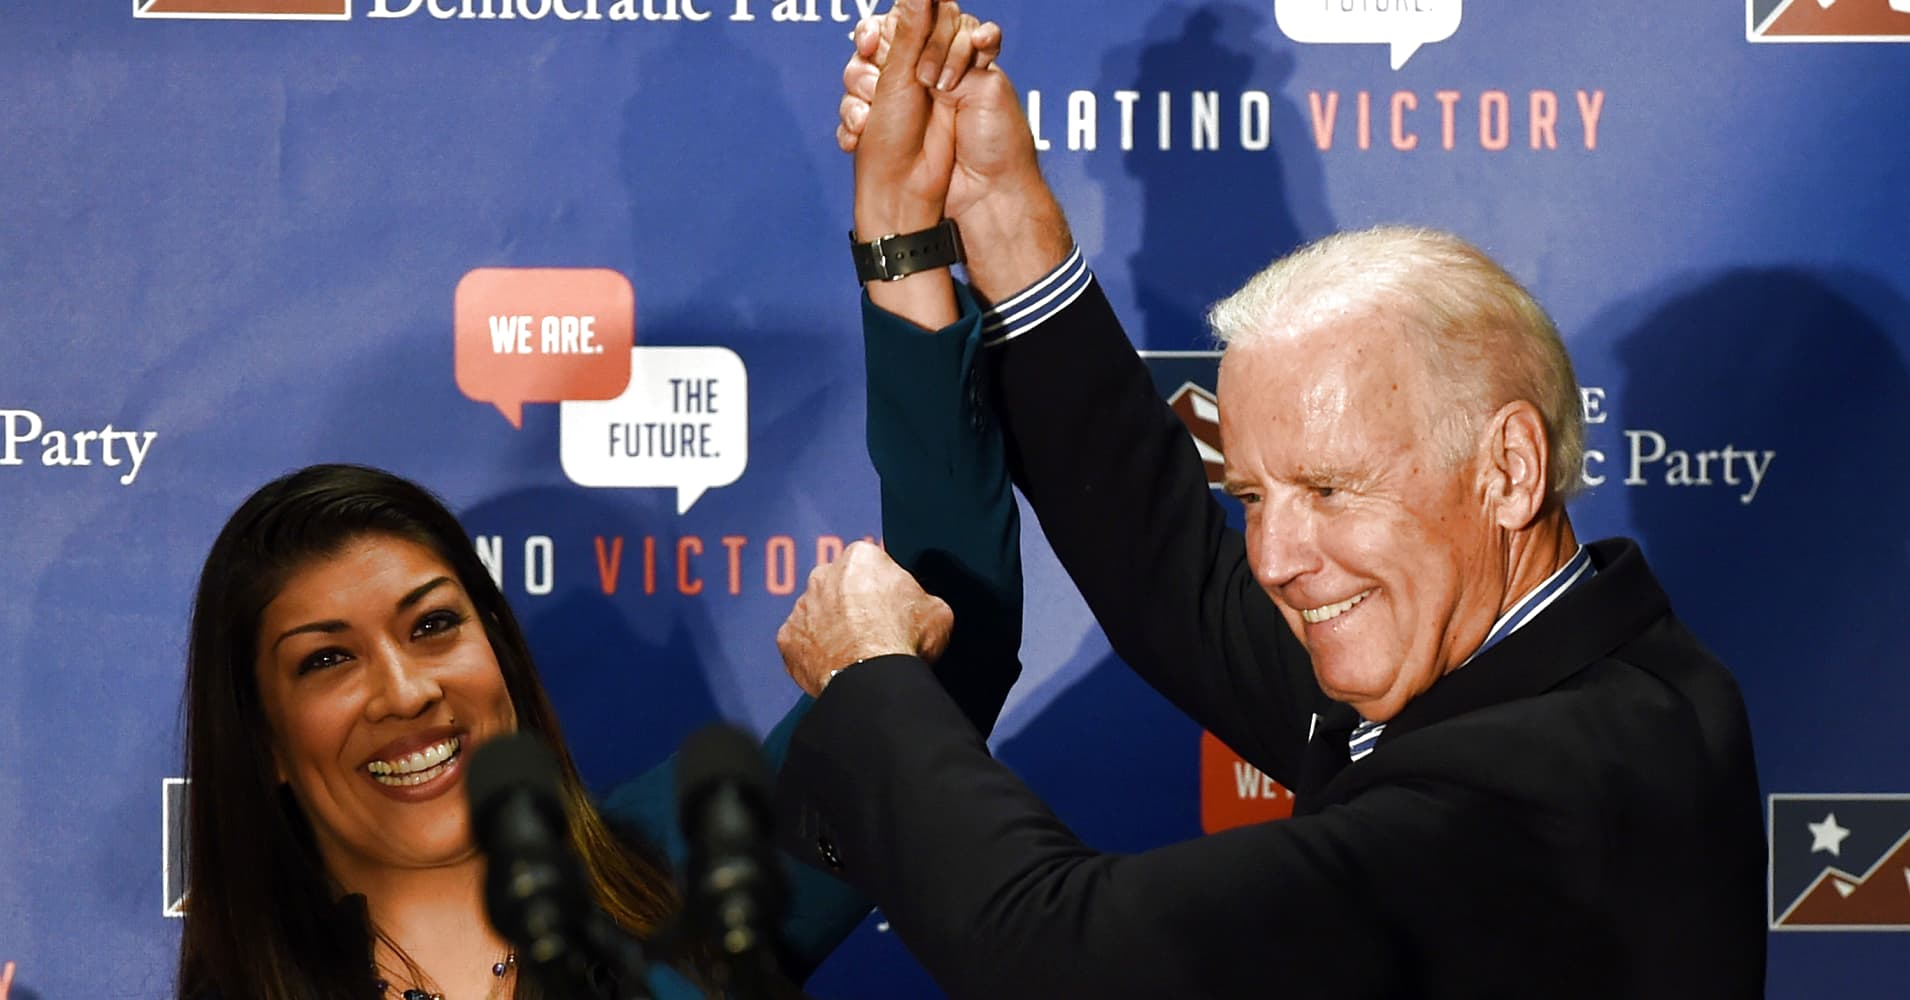 Joe Biden responds to kiss accusation: 'Never did I believe I acted inappropriately'